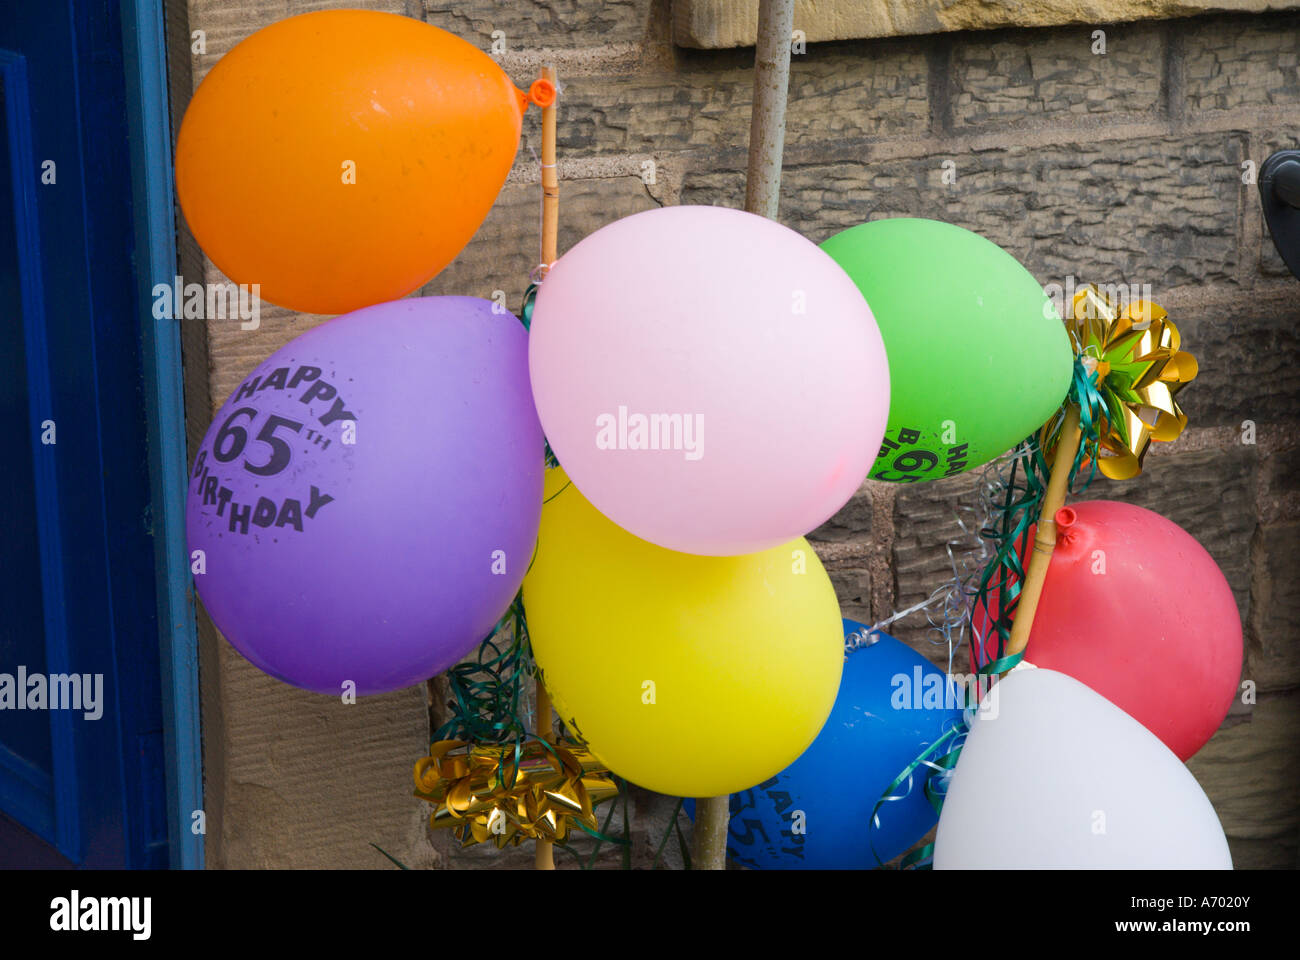 Balloons Outside A House In Scotland For 65th Birthday Party